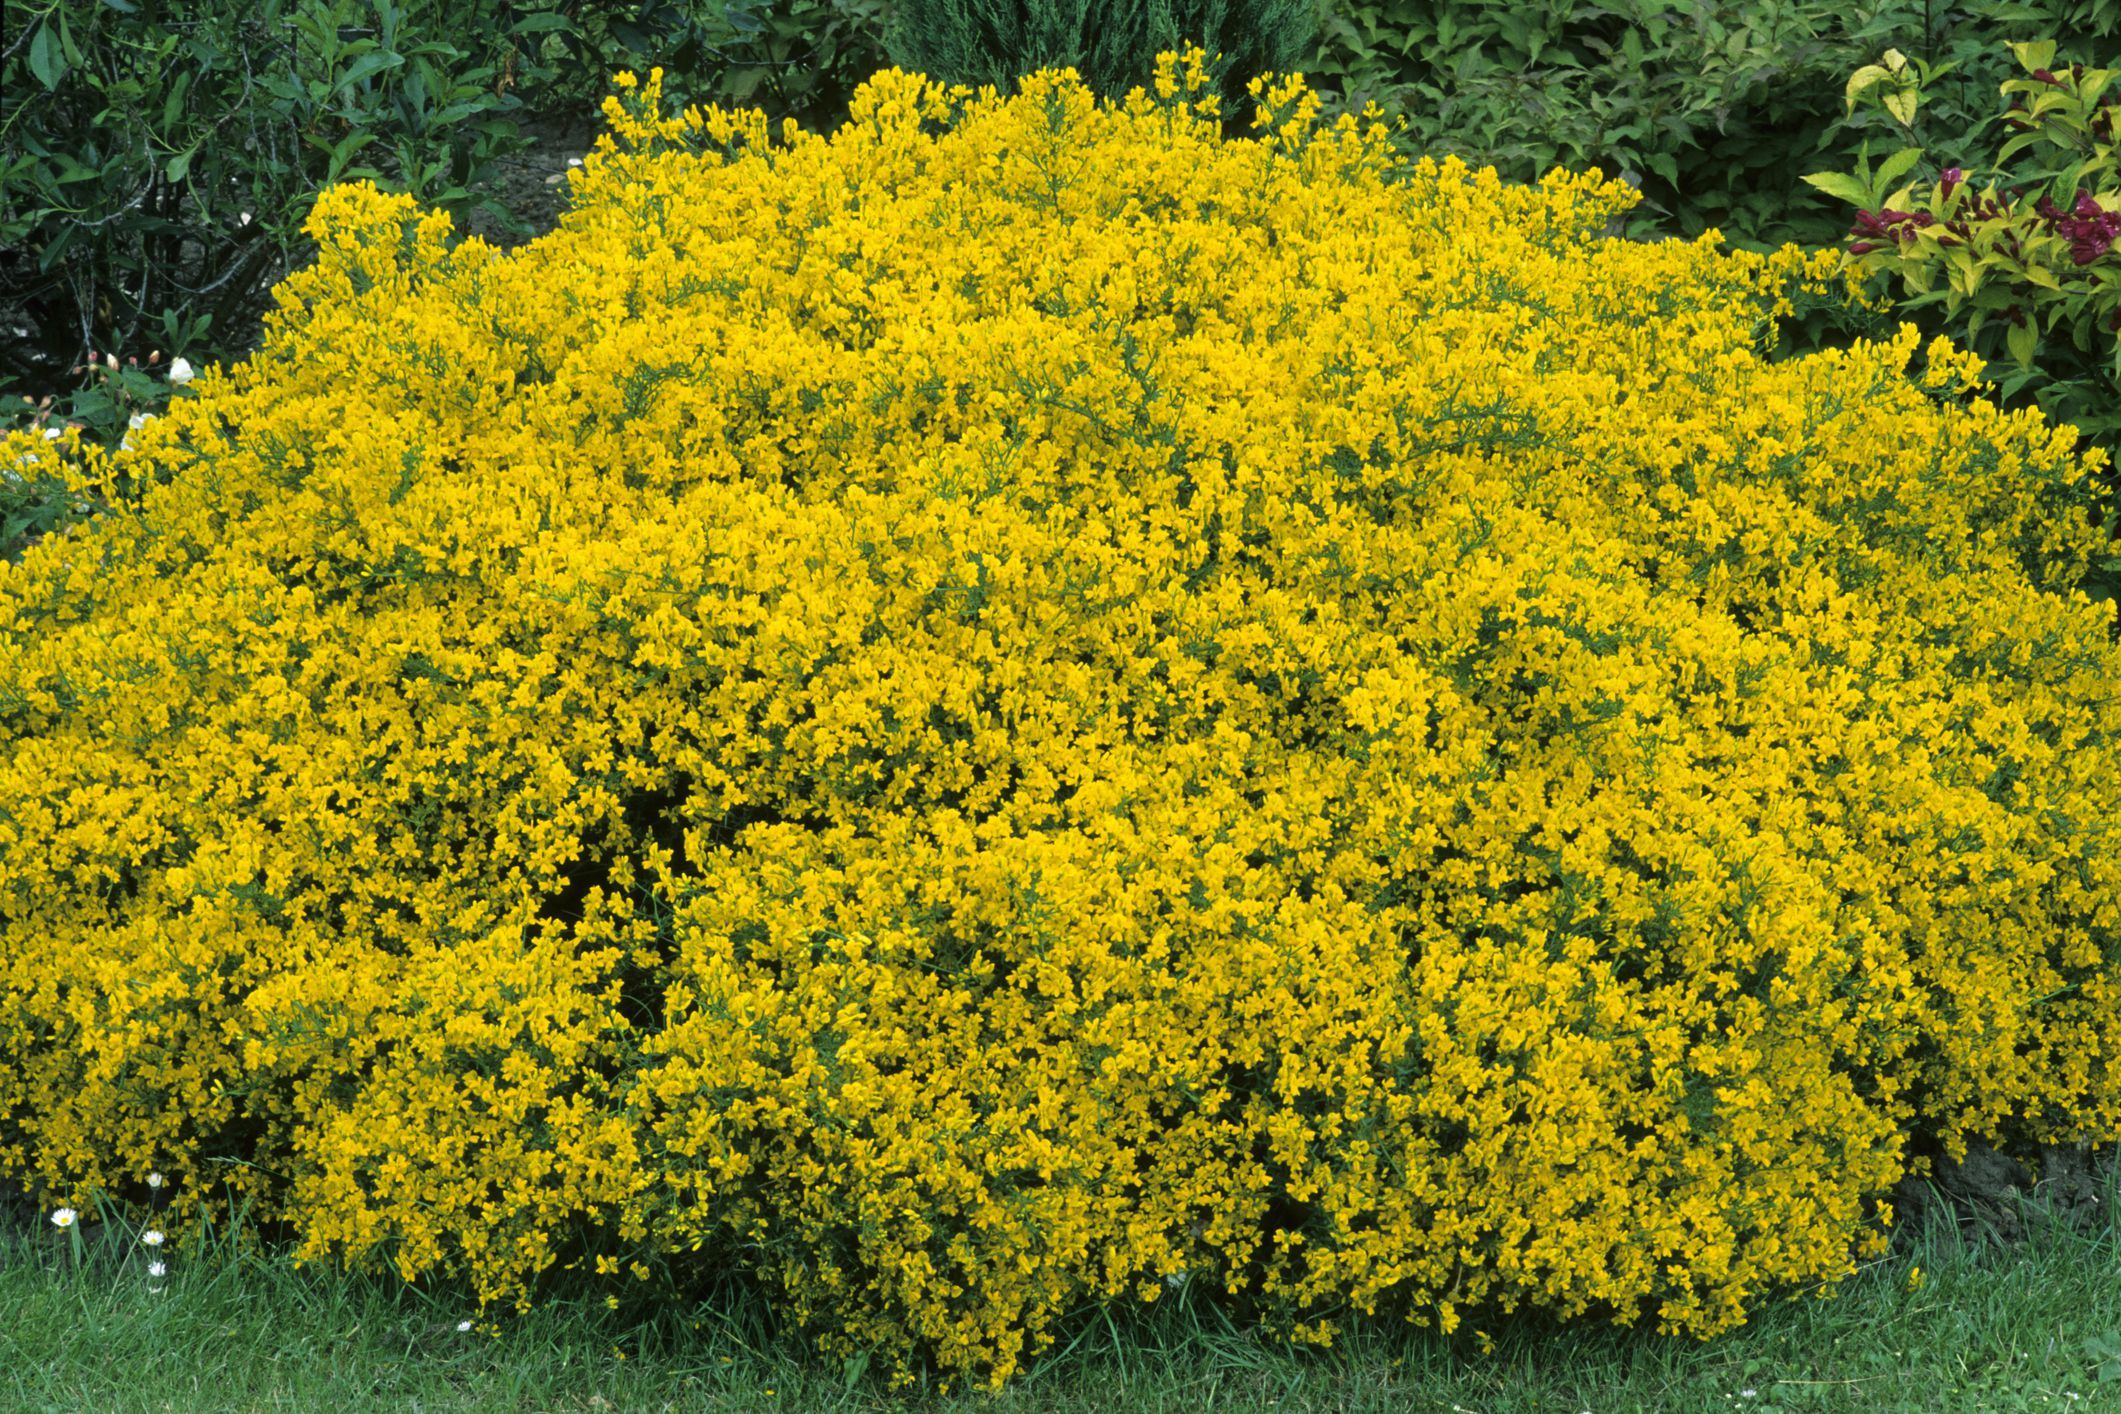 7. Lydian Broom